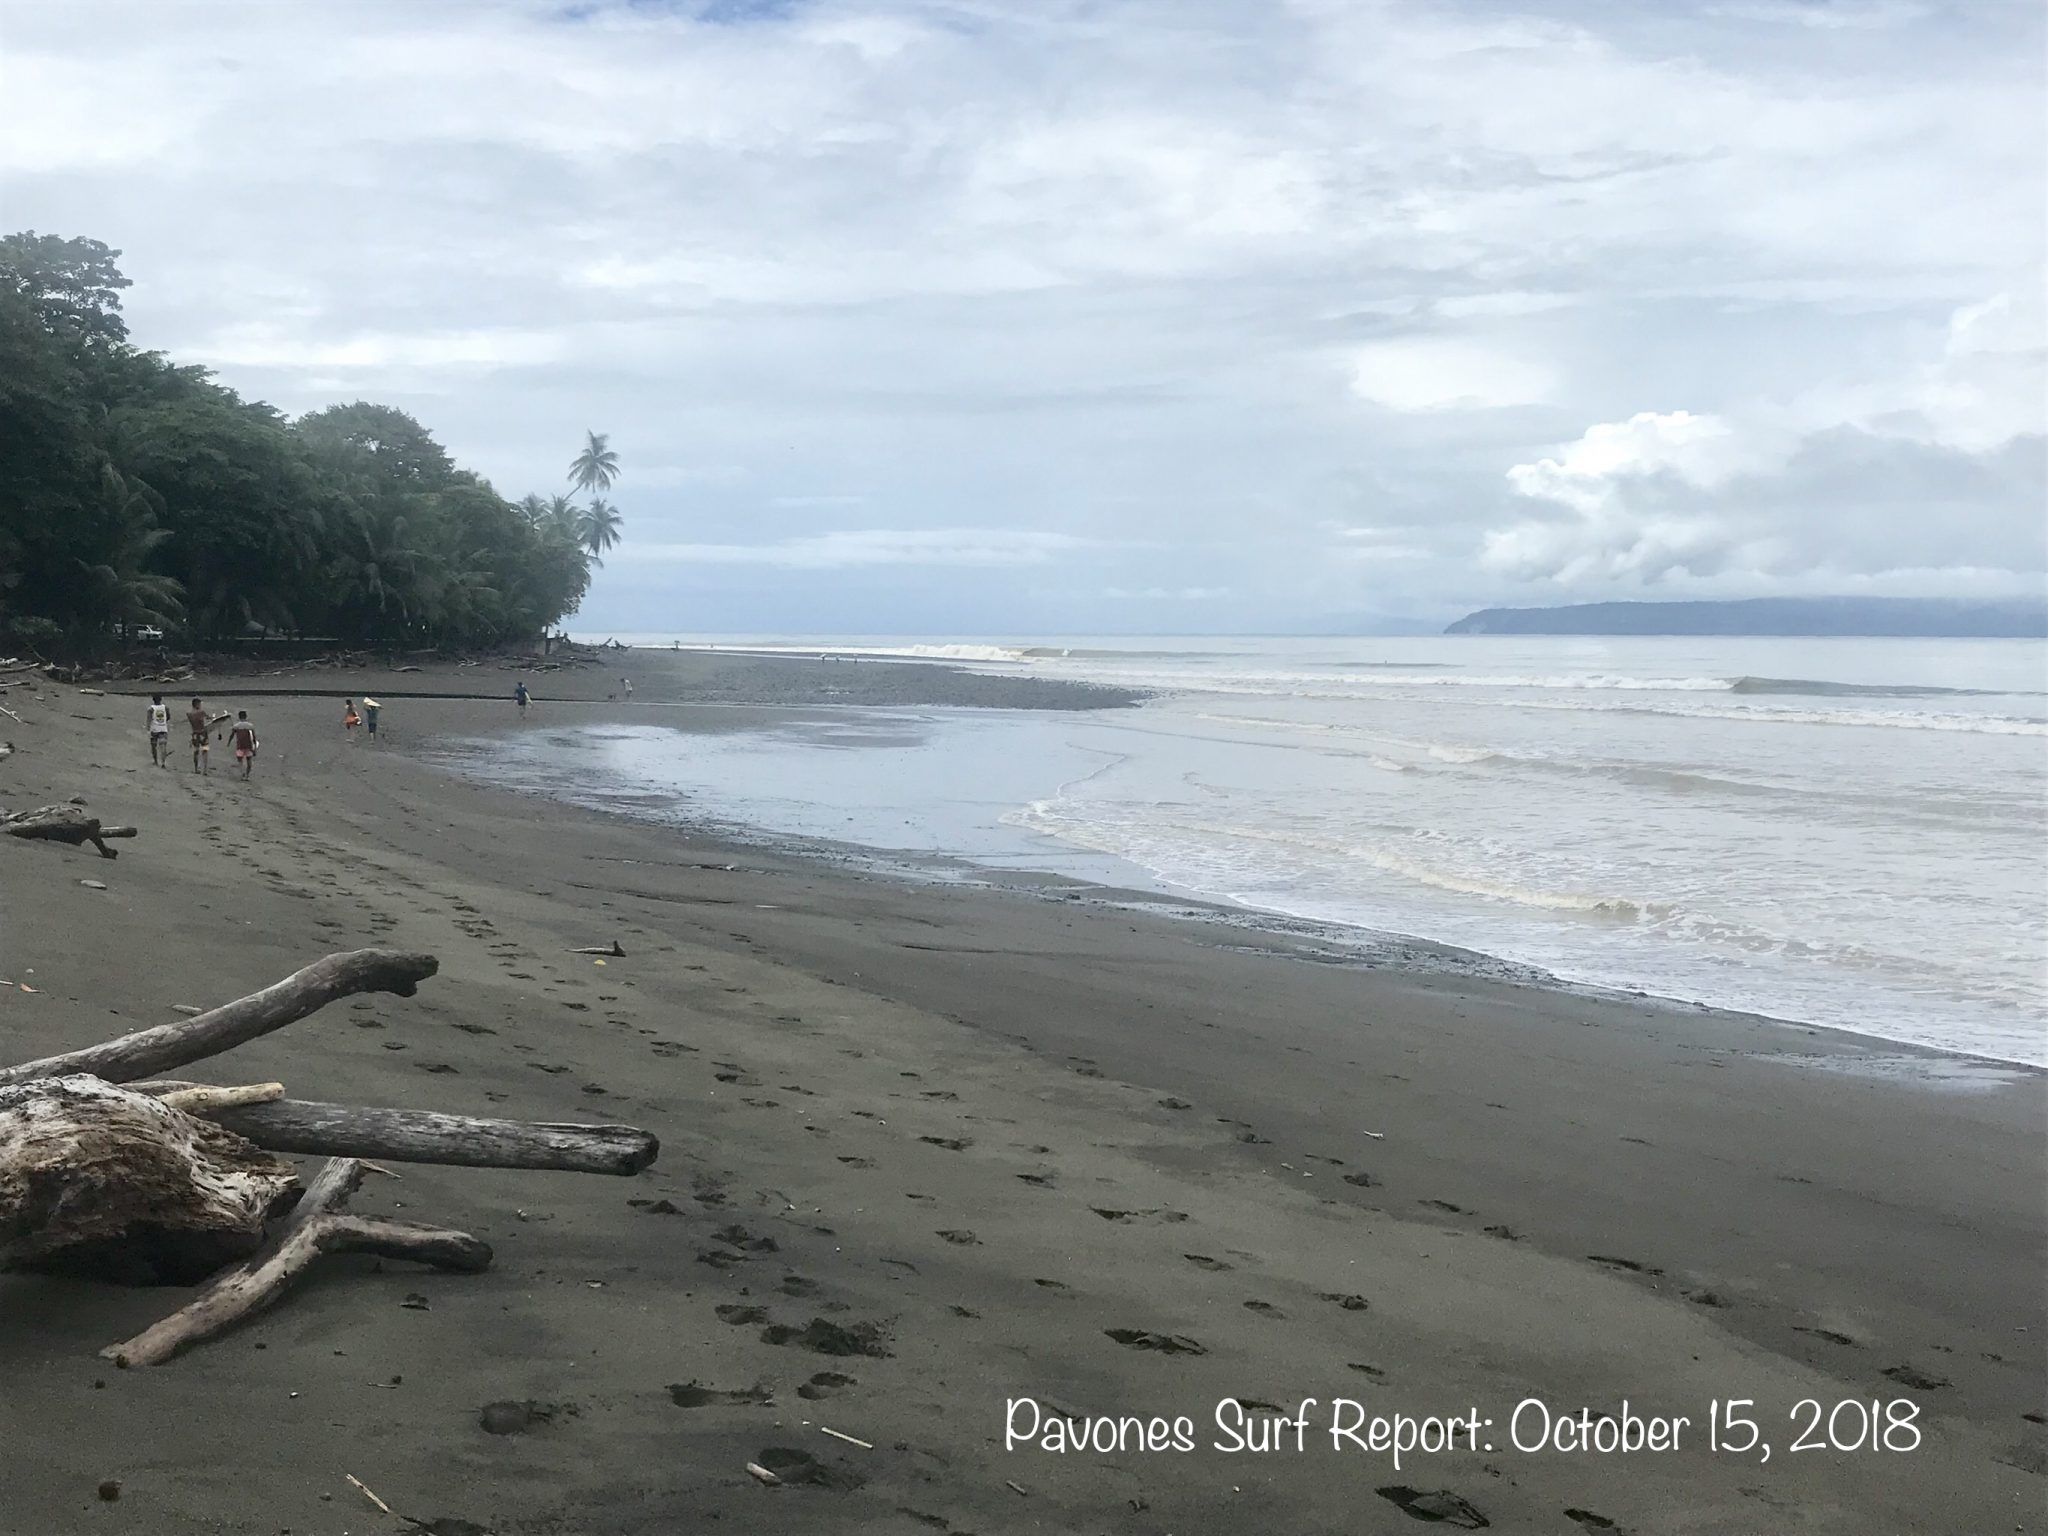 Pavones Surfing Report